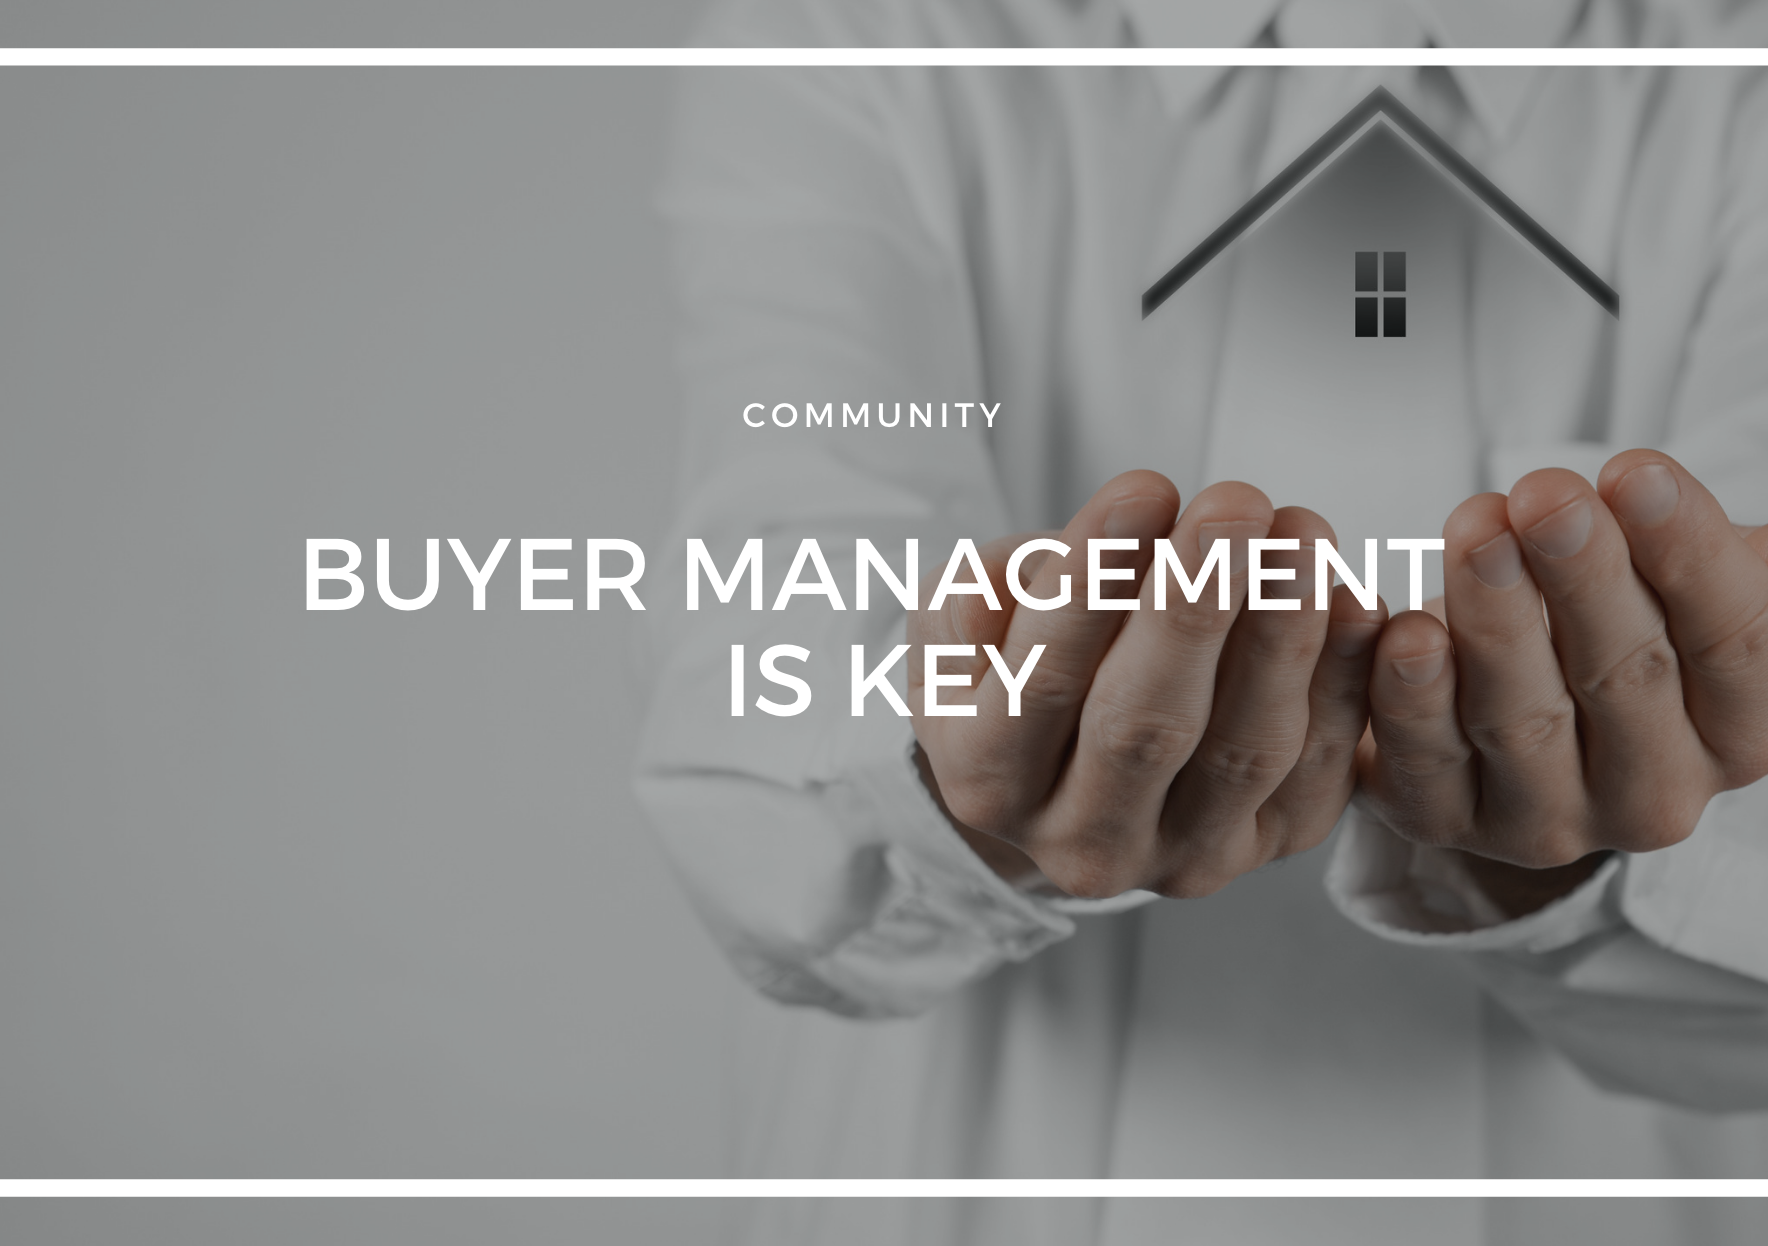 BUYER MANAGEMENT IS KEY